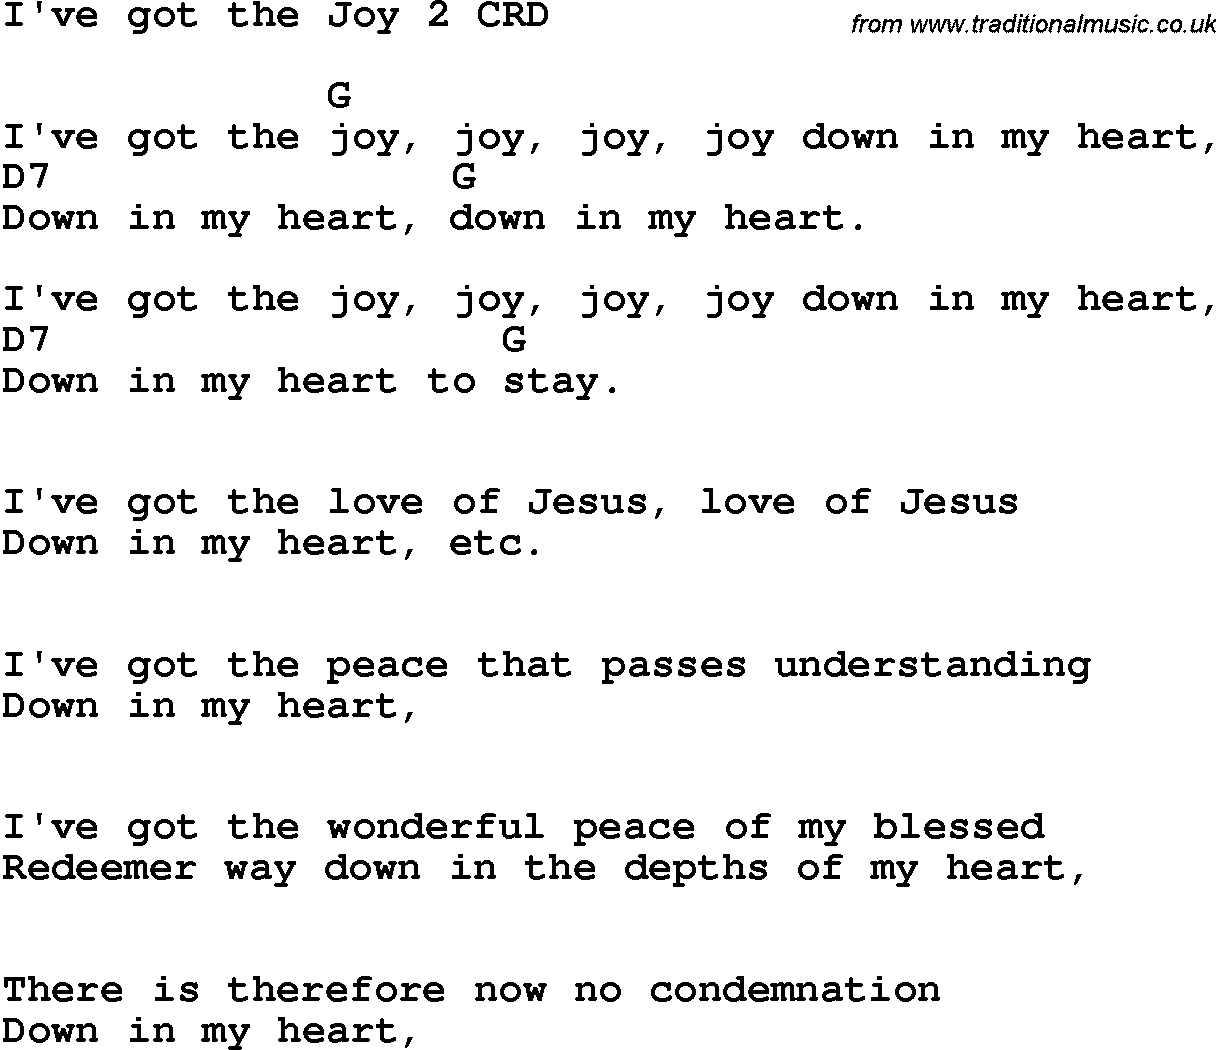 Christian song joy in my heart